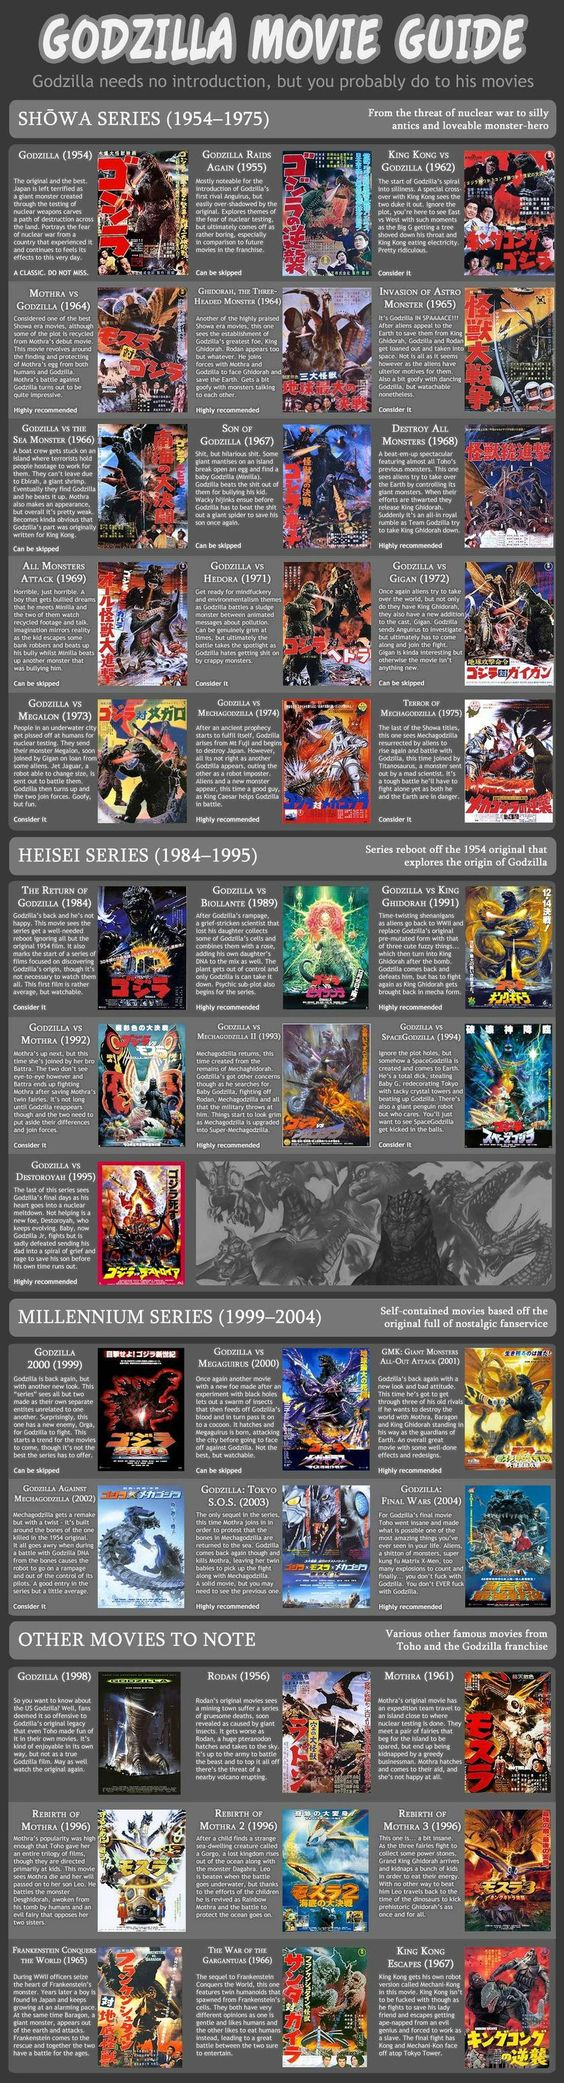 beginner's guide to godzilla. (my apologies if the F-word offends some people.)